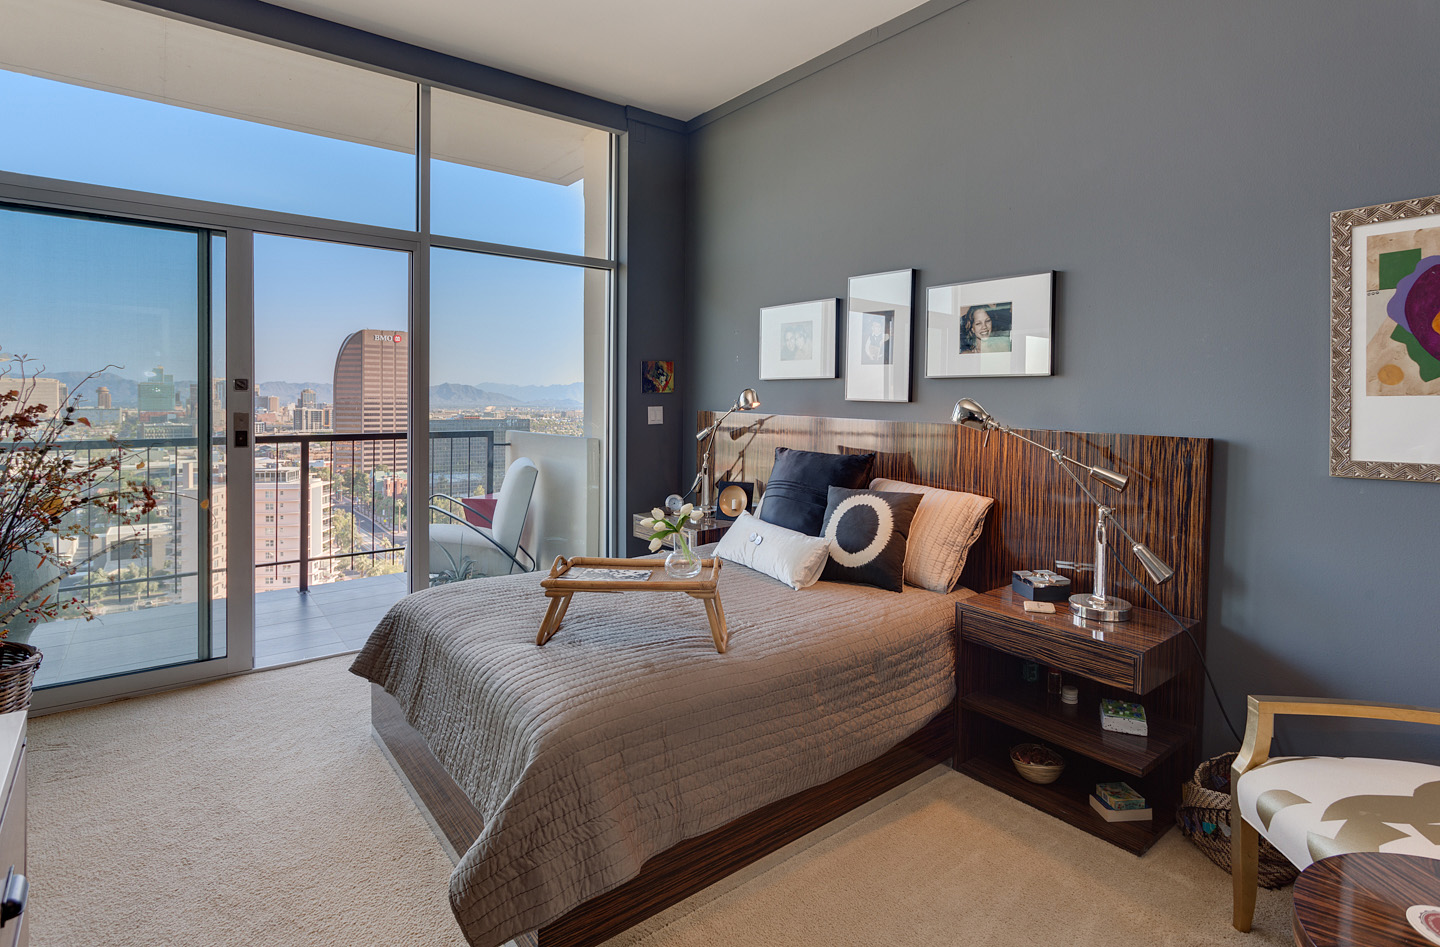 2323-N-Central-Ave-Phoenix-Downtown-Penthouse-32.jpg